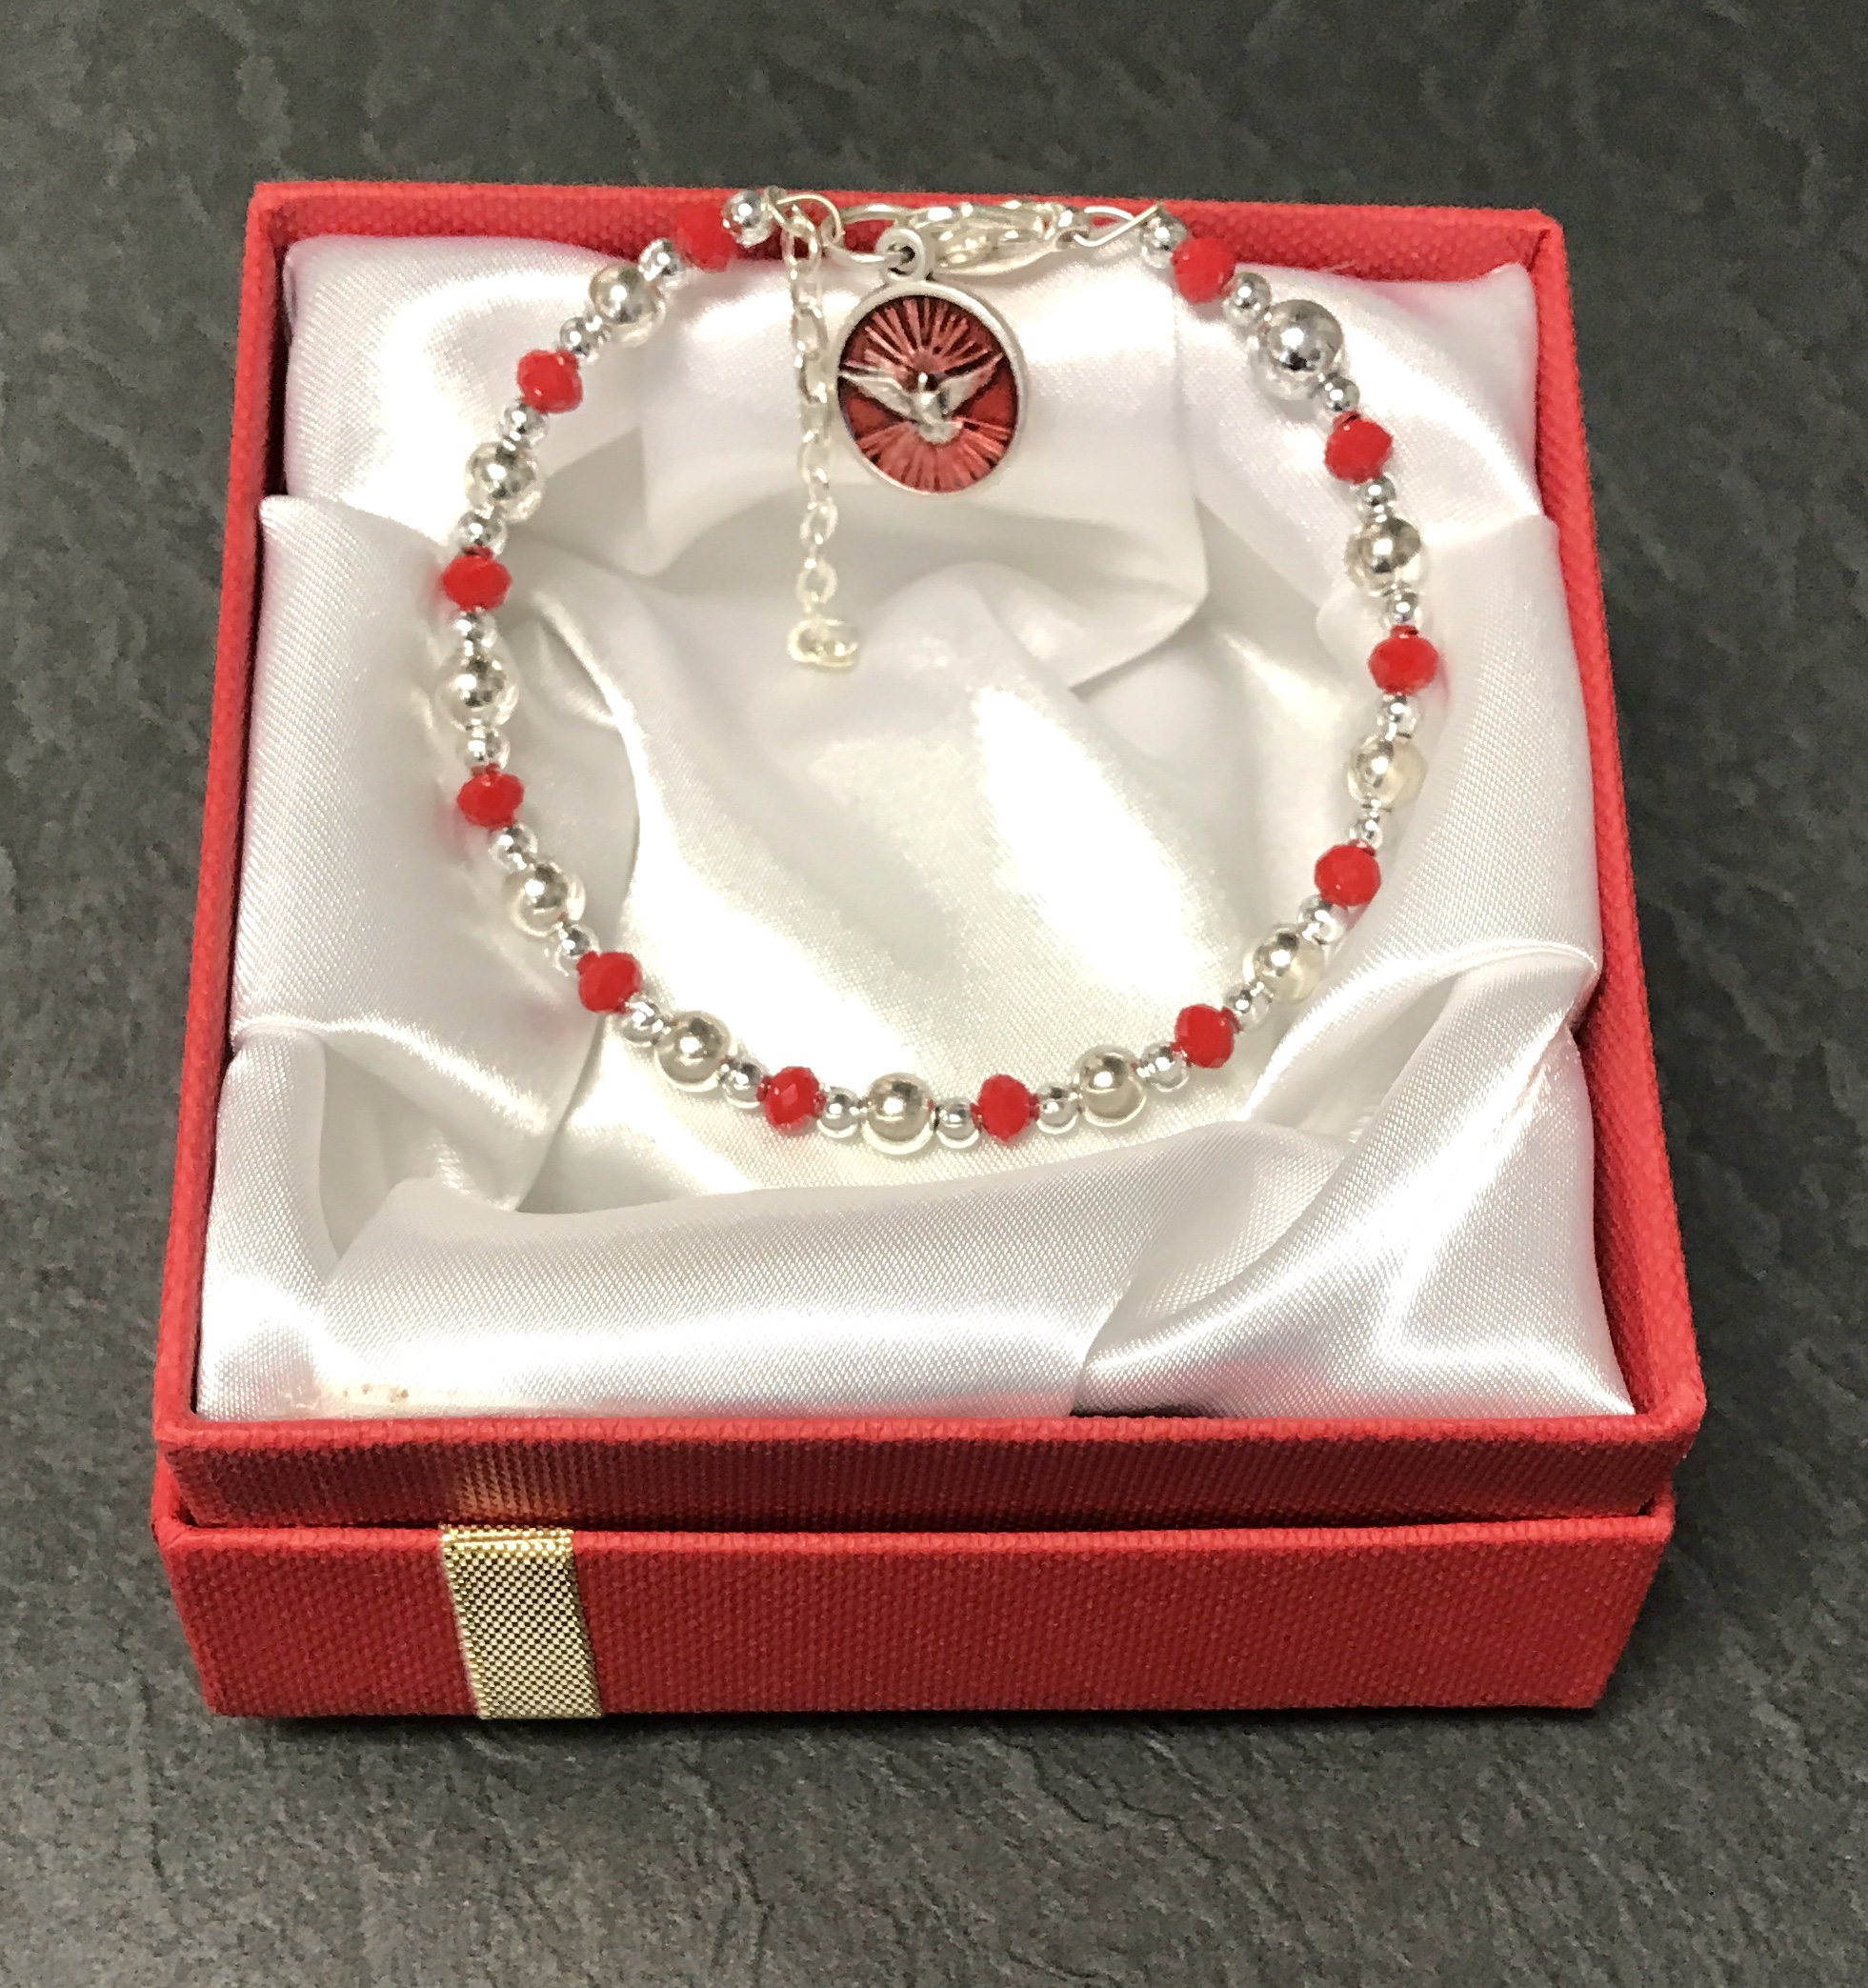 RUBY & SILVER CONFIRMATION BRACELET GIFT BOXED